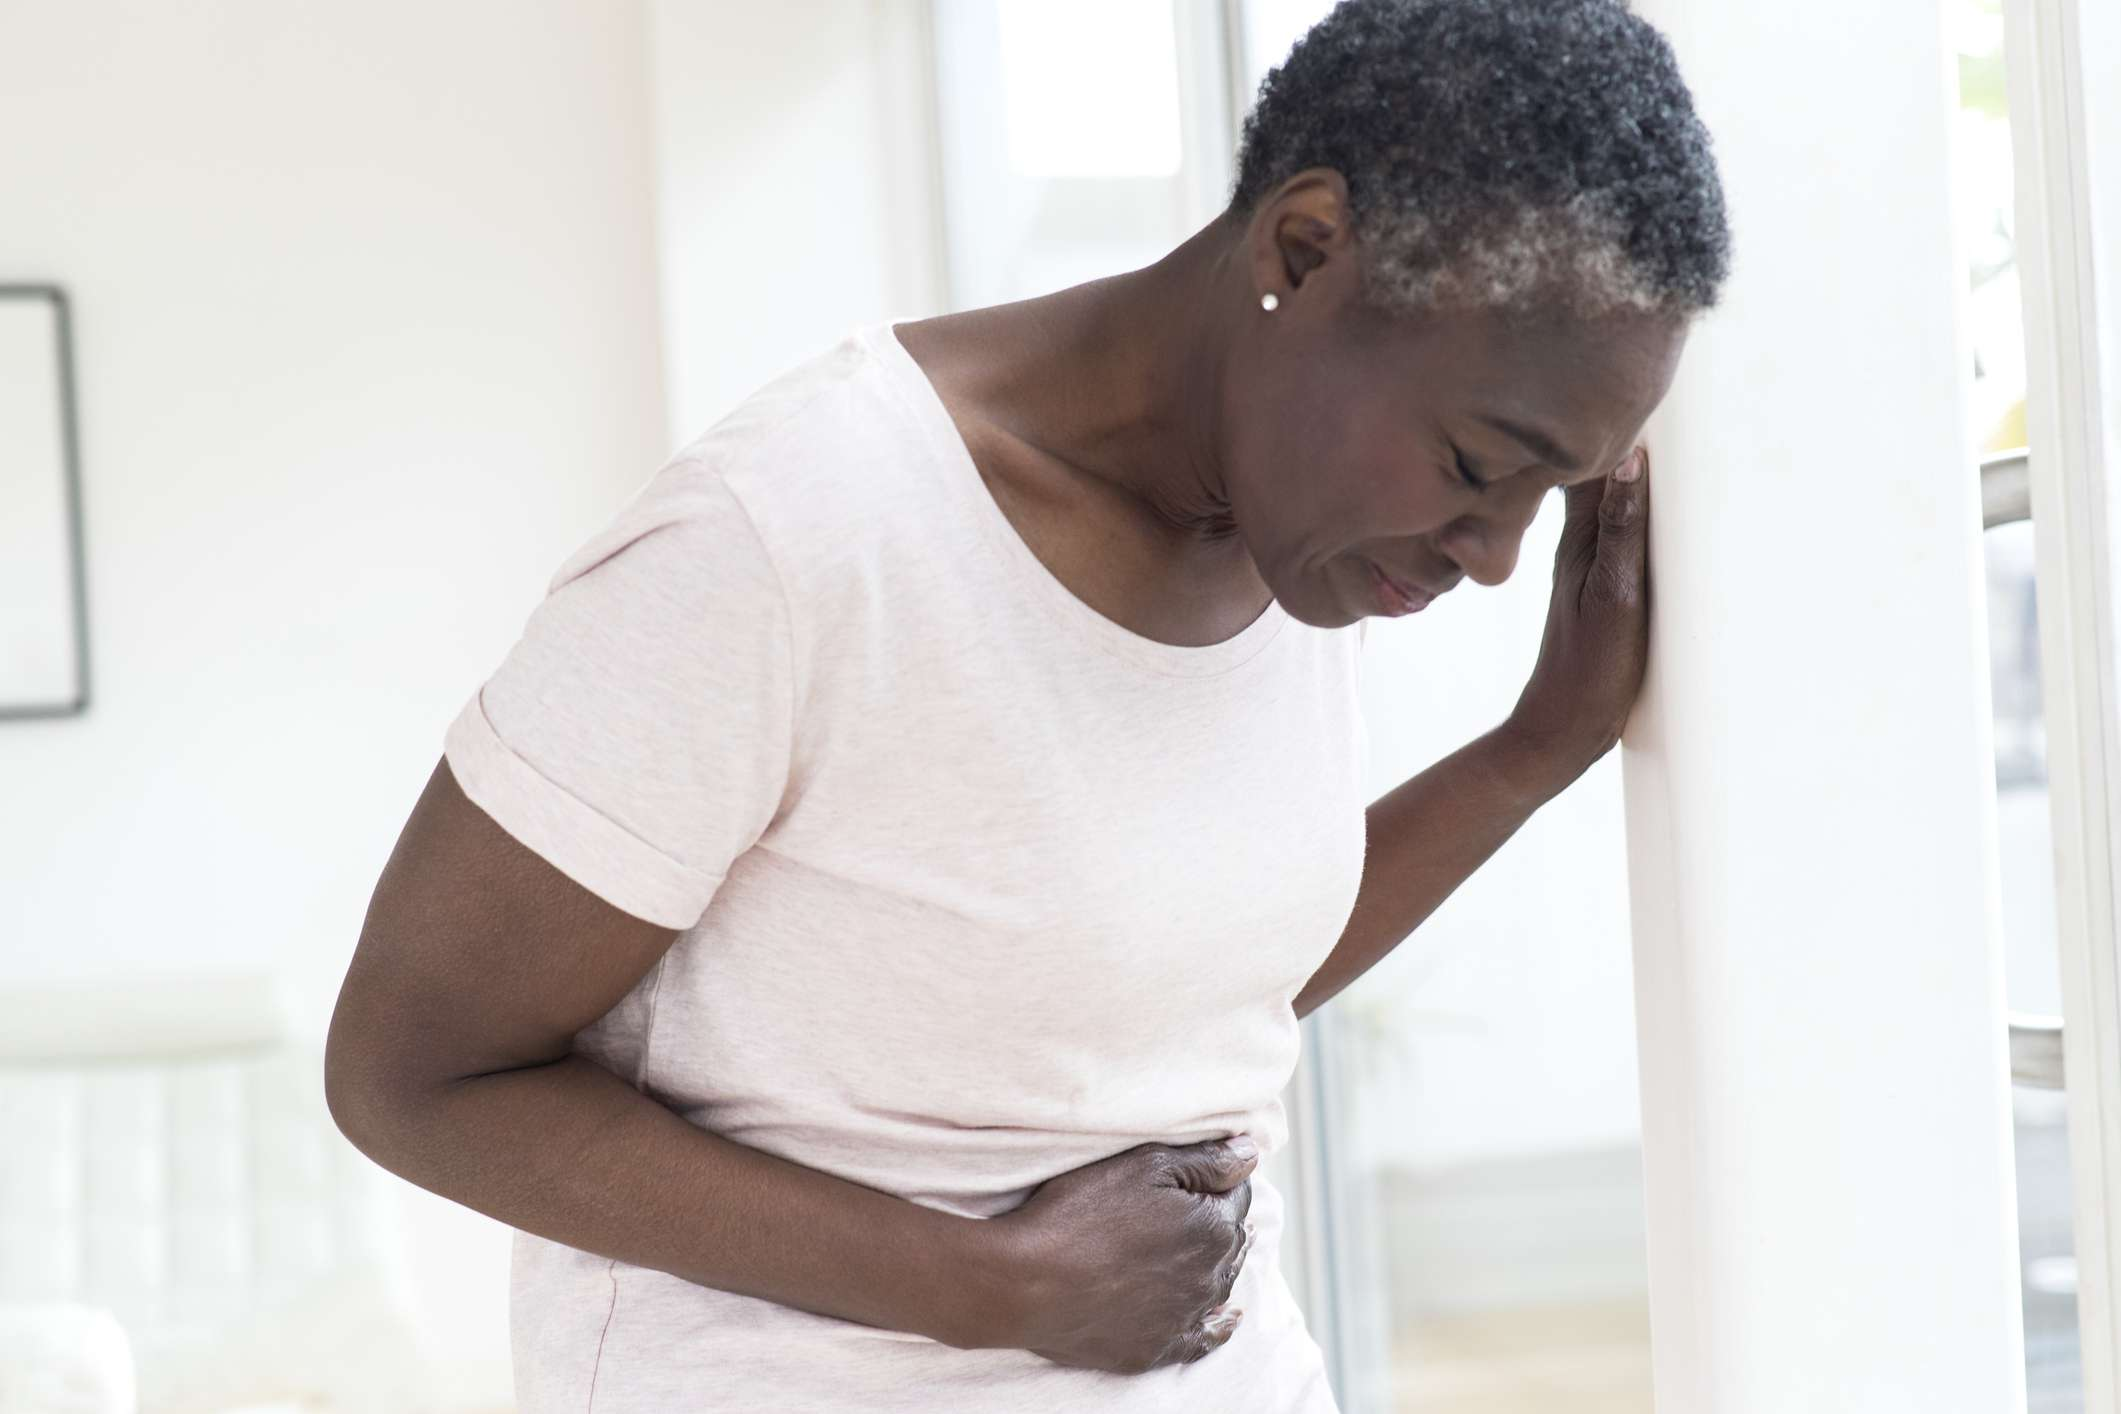 A mature woman holding her stomach in discomfort.